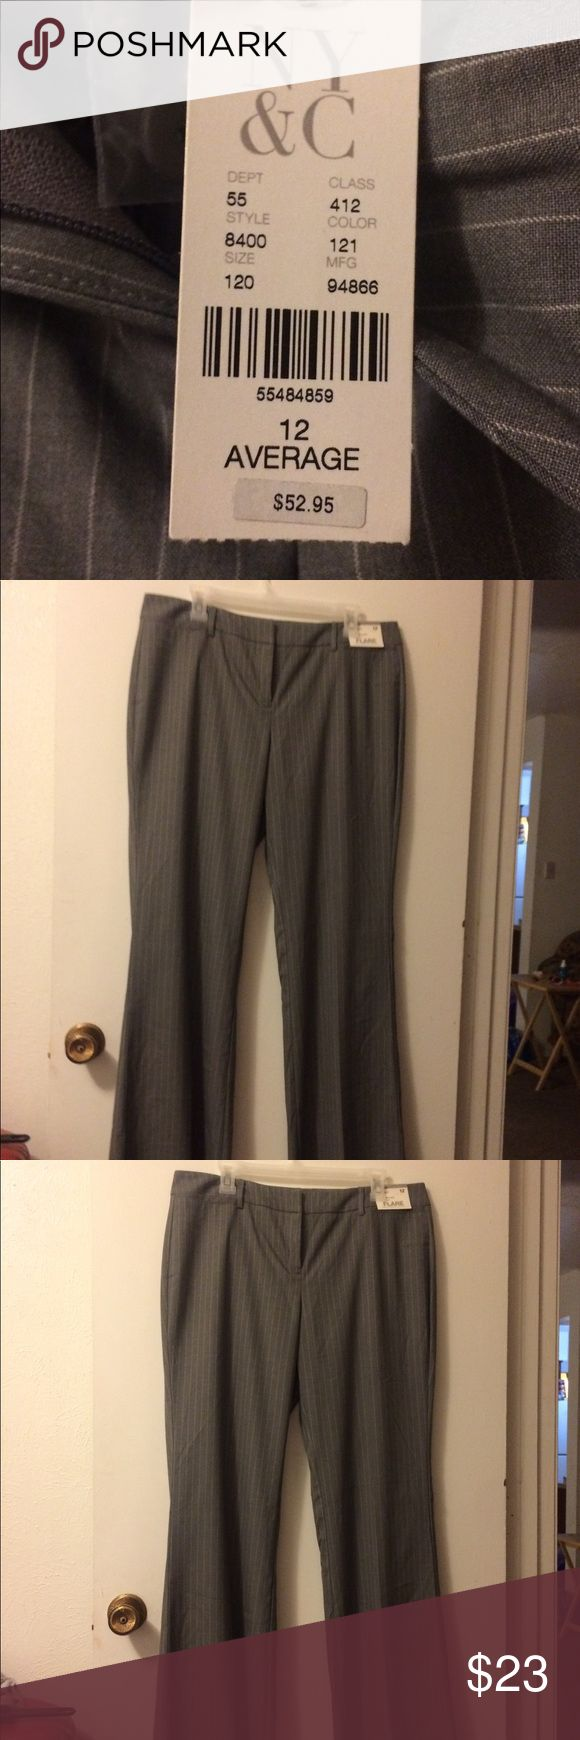 "Pants with white pin stripe NWT grey pants with white pin stripe. Great for work. I bought without trying them on and they didn't fit. Size 12 W 17"" L 41"" button to crotch 9.5"". (If anyone one has the proper measurement term please let me know) TY These pant legs have a bit of flare.  They are cute not crazy bell bottoms New York & Company Pants Boot Cut & Flare"